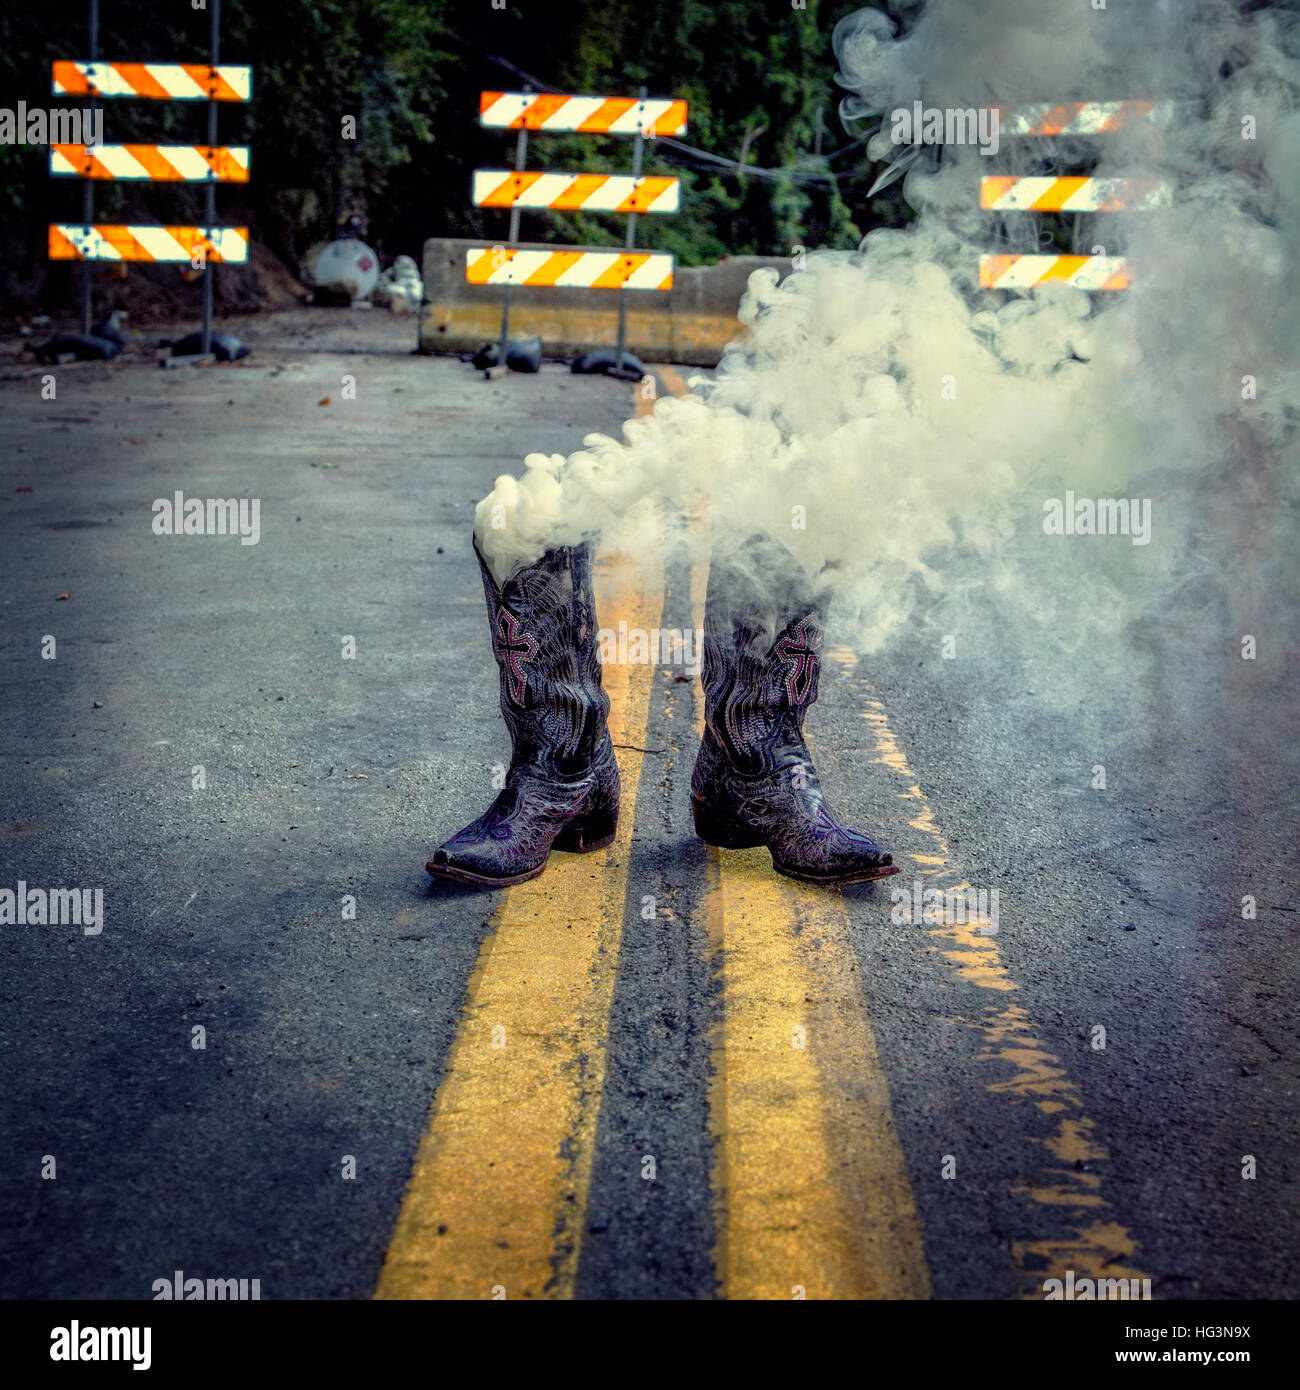 A pair of  smoking cowboy boots in front of road construction on a double yellow line - Stock Image